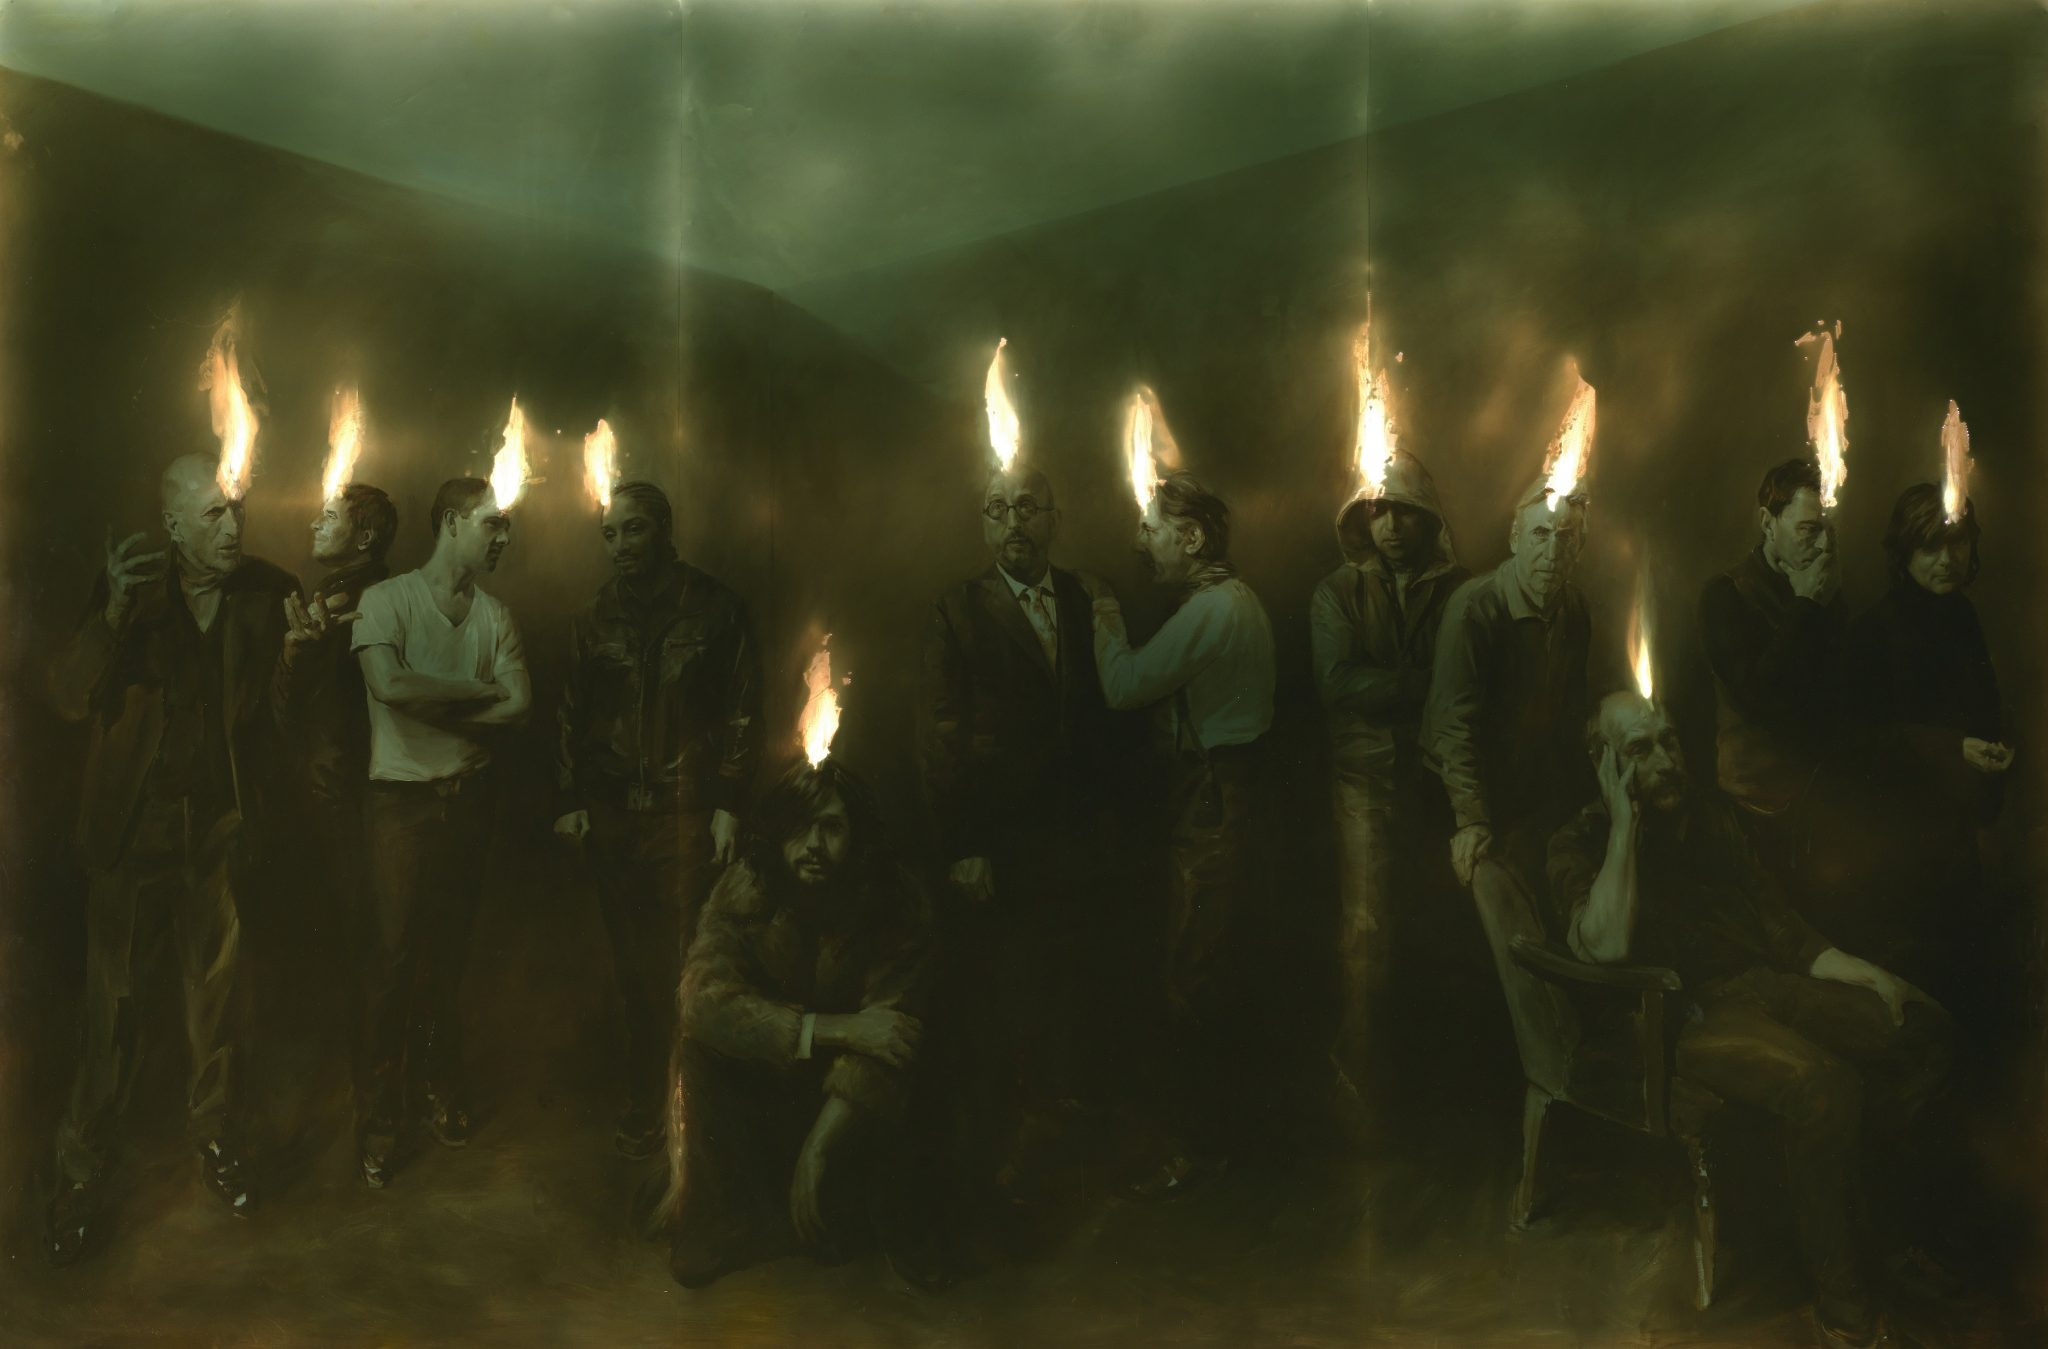 Speaking in Tongues, 2014. Oil and resin on board, 244 x 366 cm © Paul Benney, by courtesy of the artist